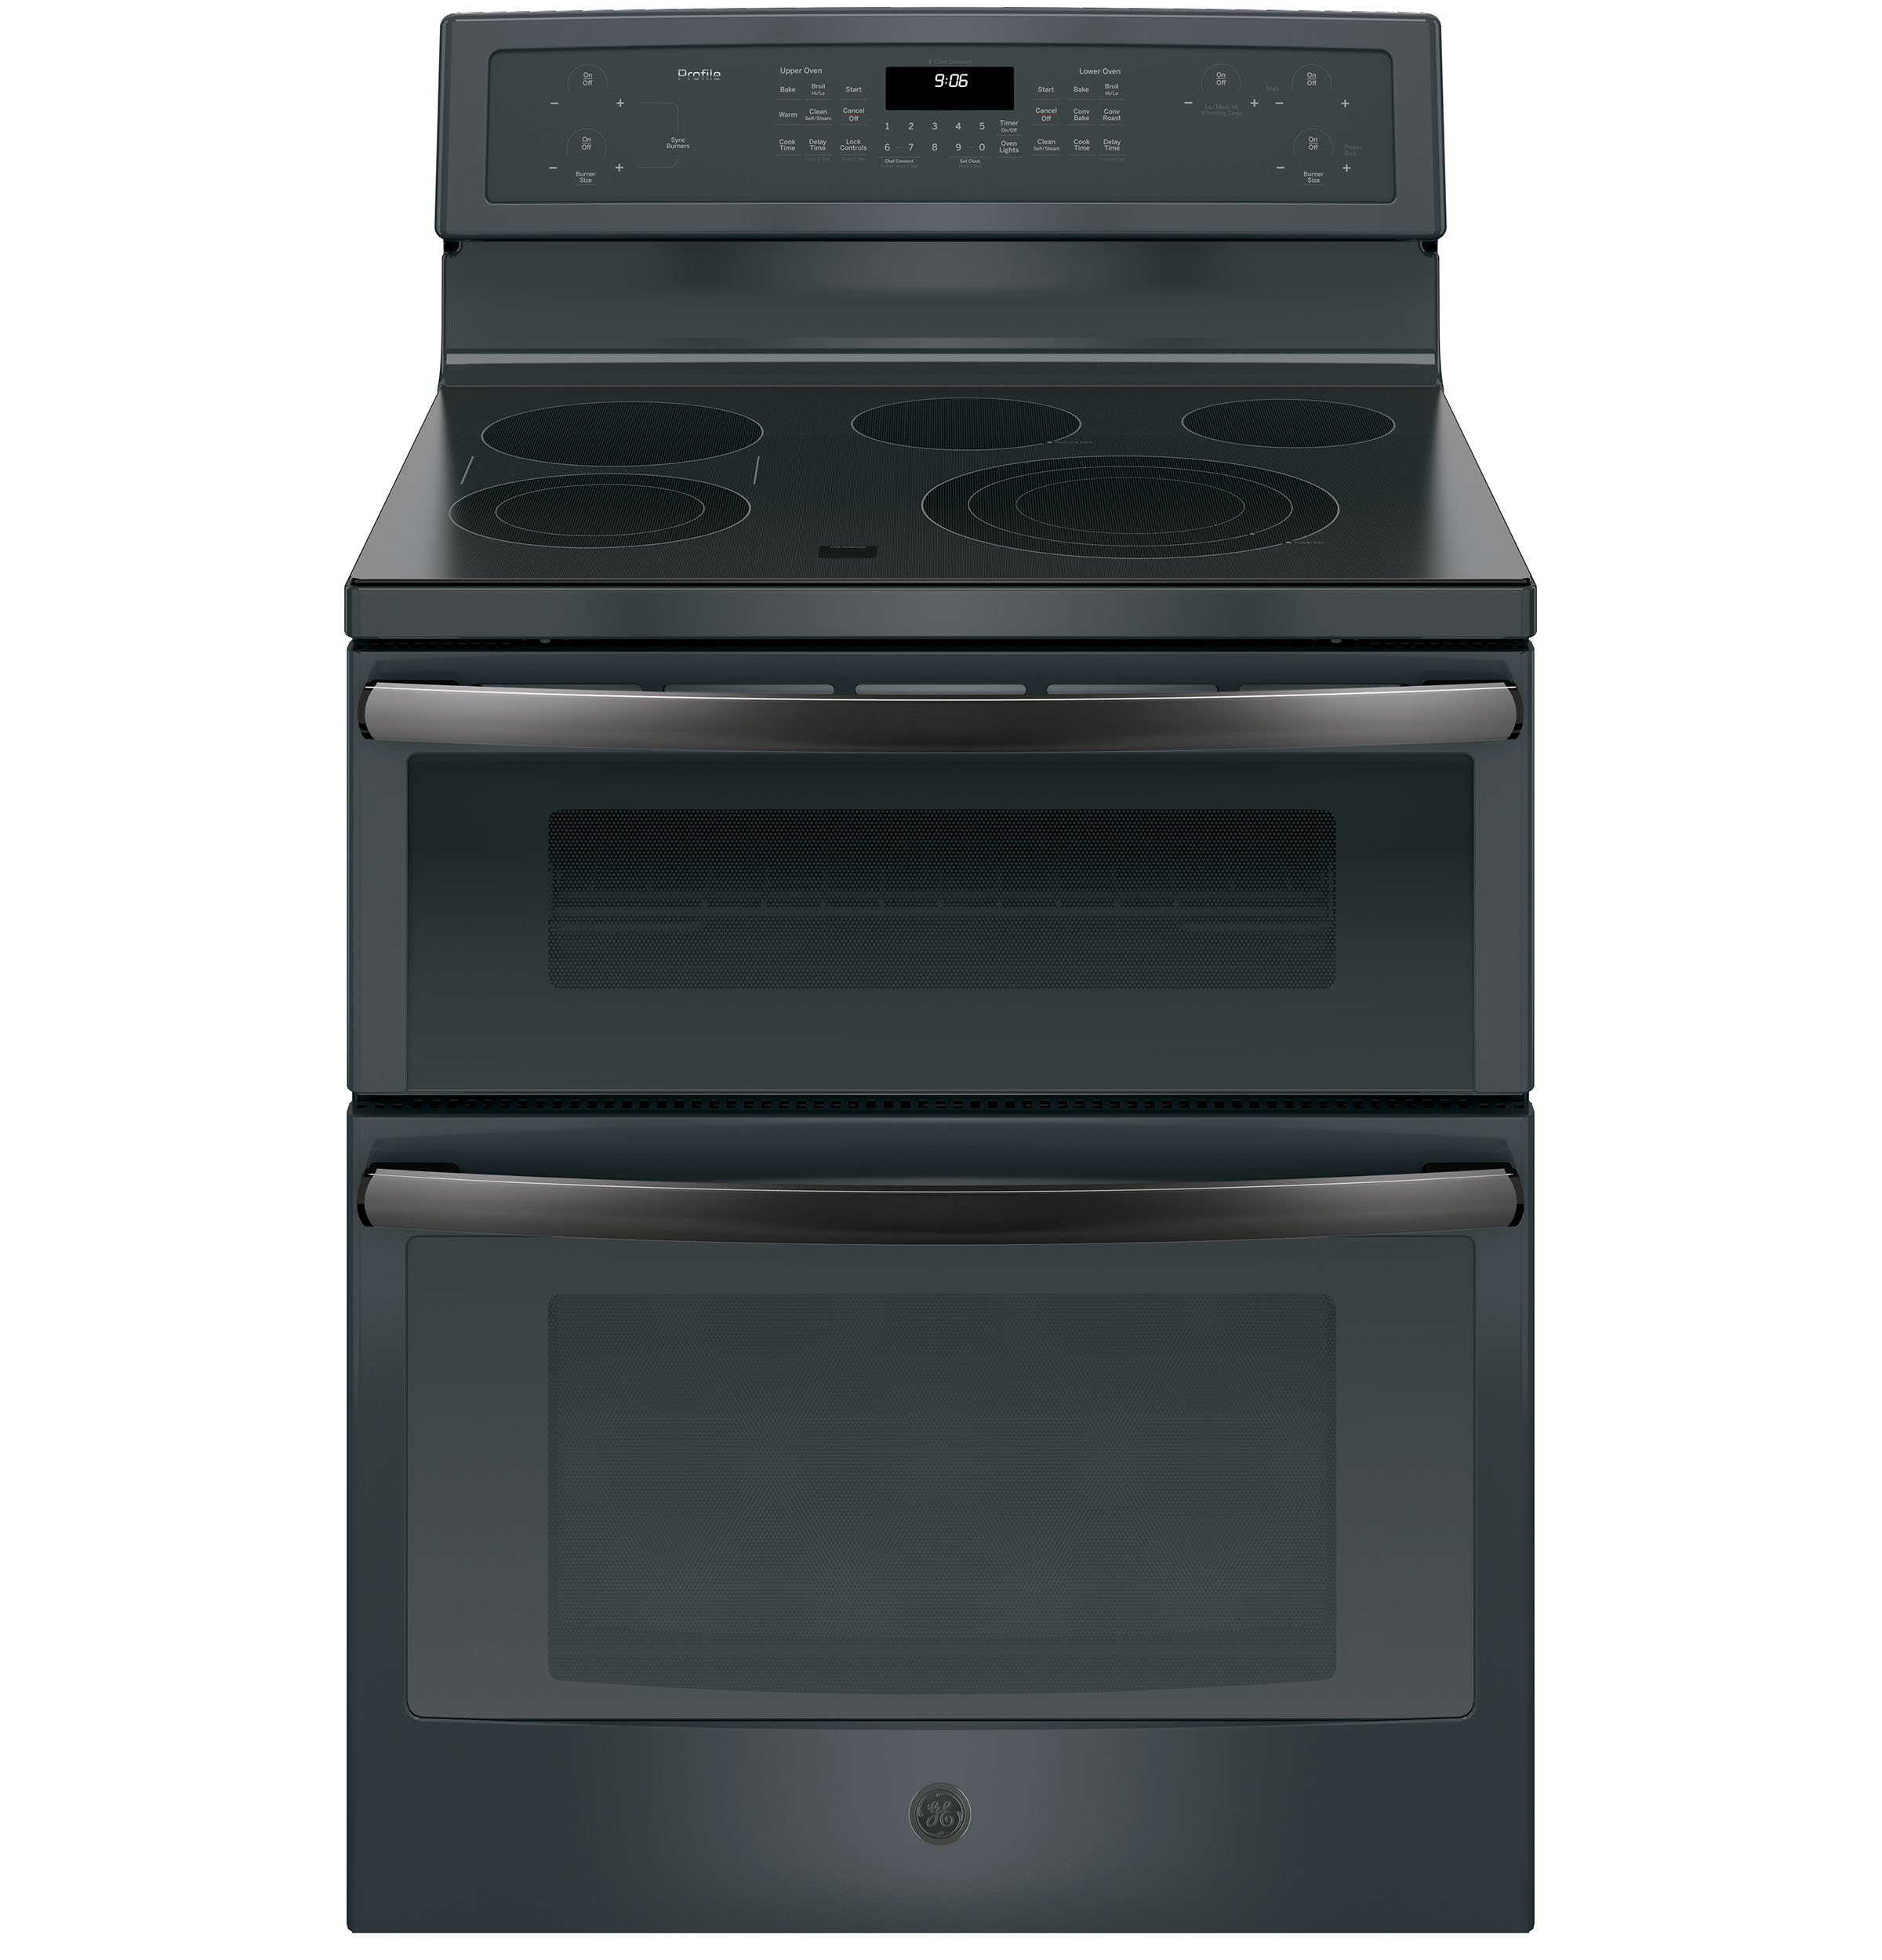 "GE Profile GE Profile™ Series 30"" Free-Standing Electric Double Oven Convection Range"